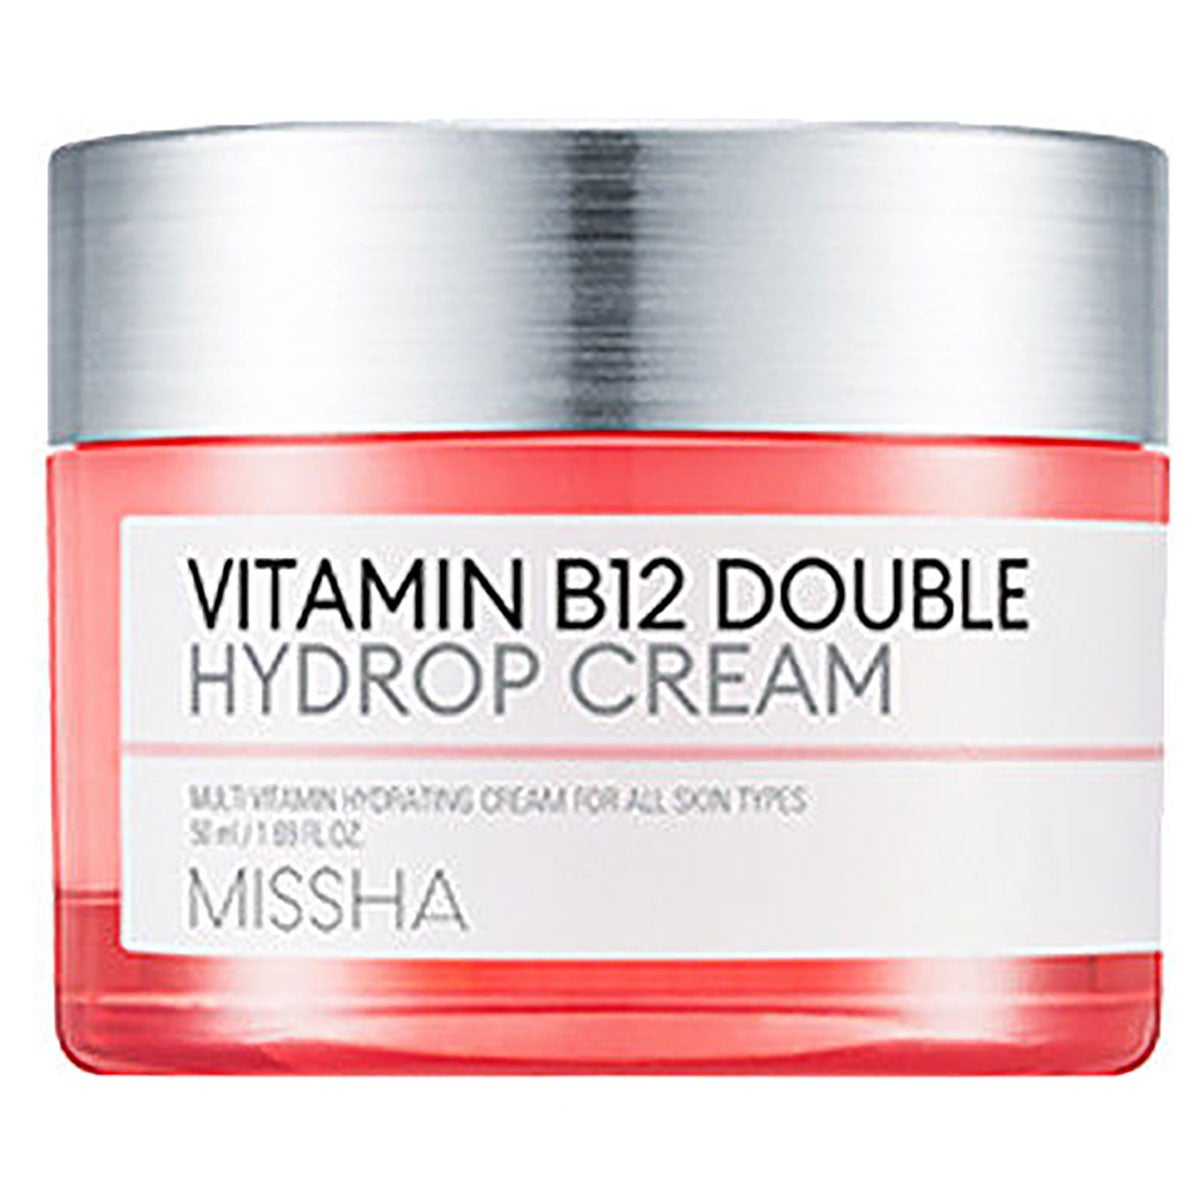 MISSHA Vitamin B12 Double Hydrop Cream